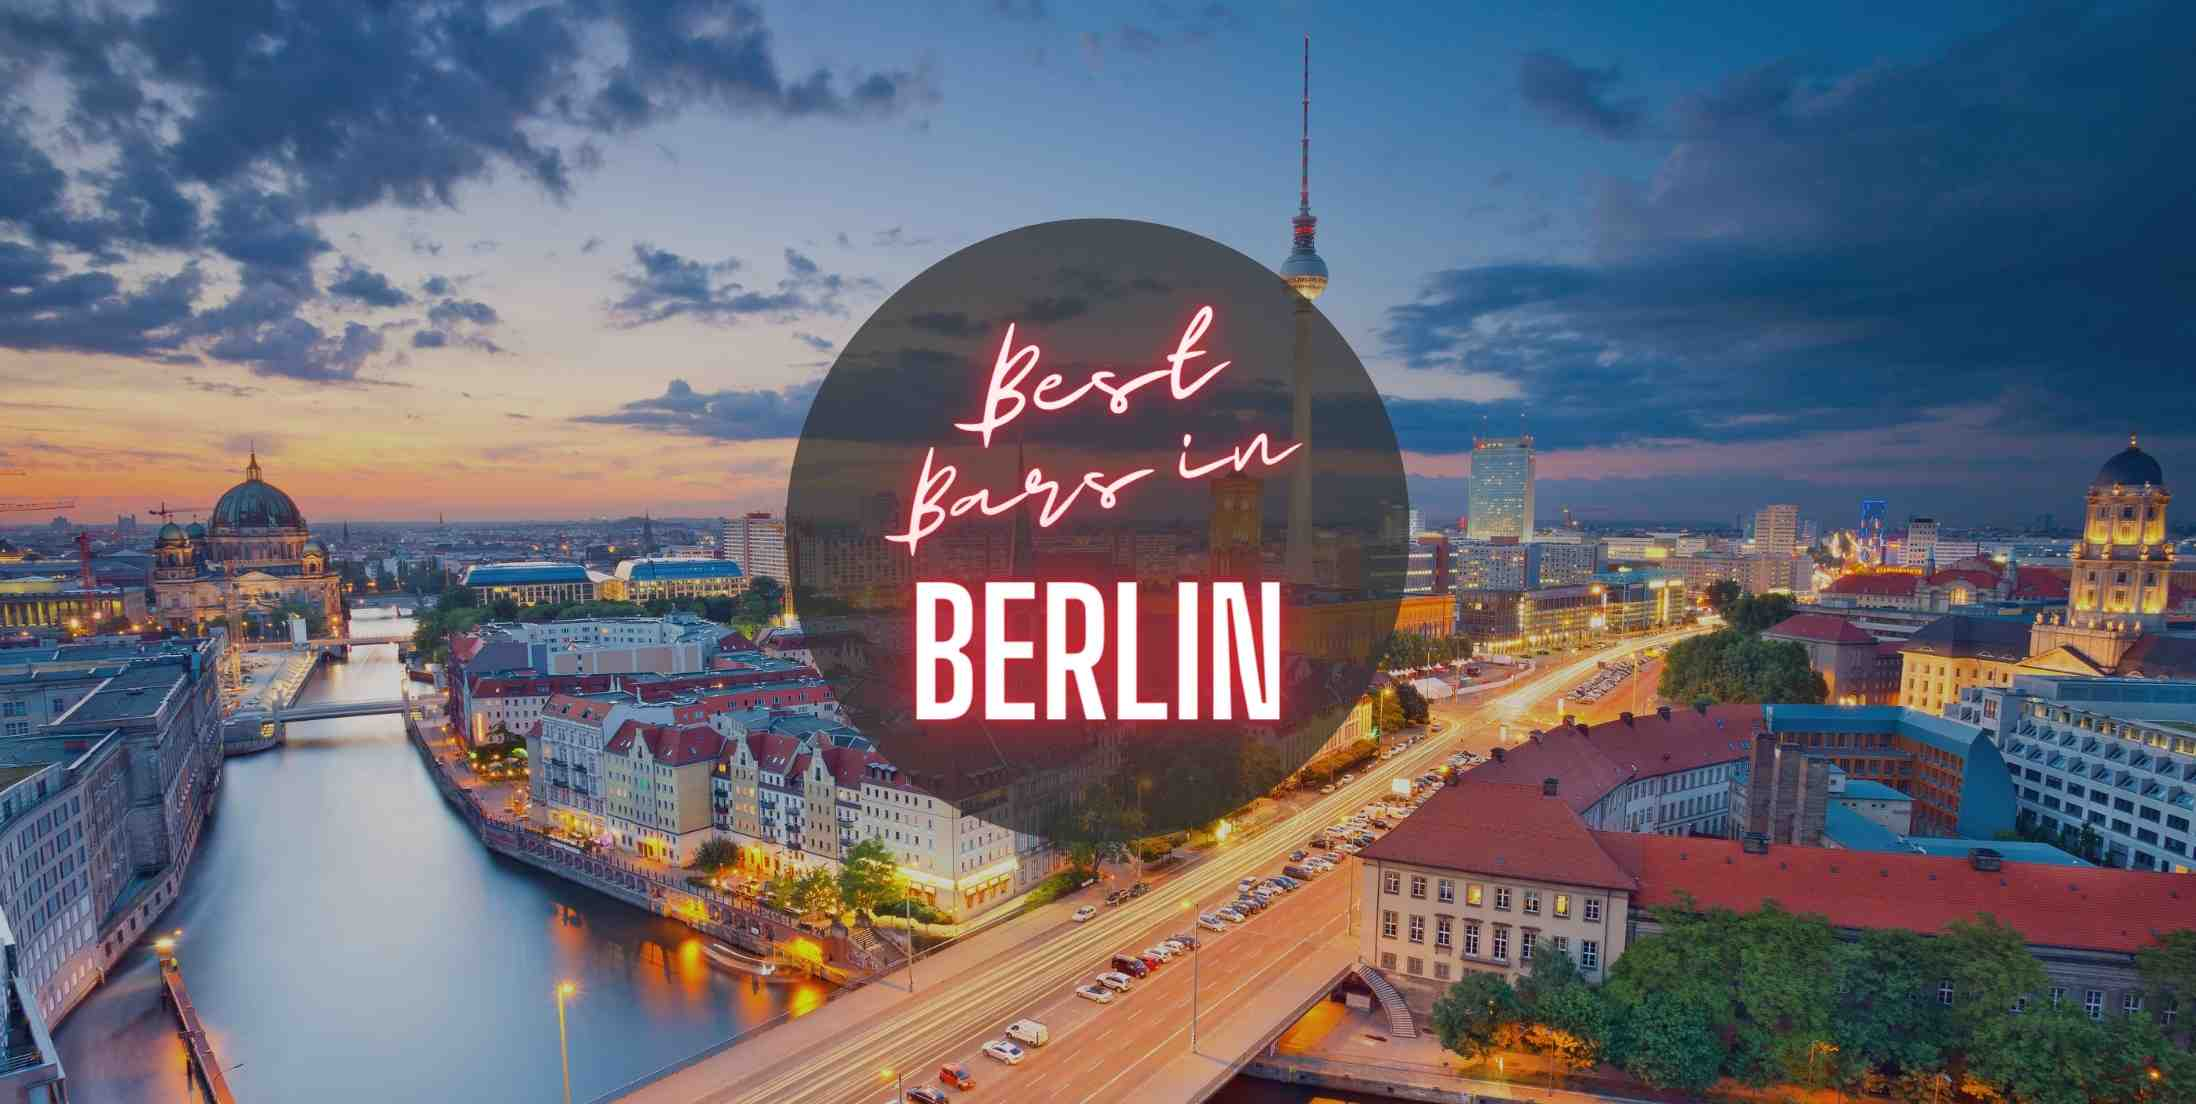 Best Bars in Berlin - banner